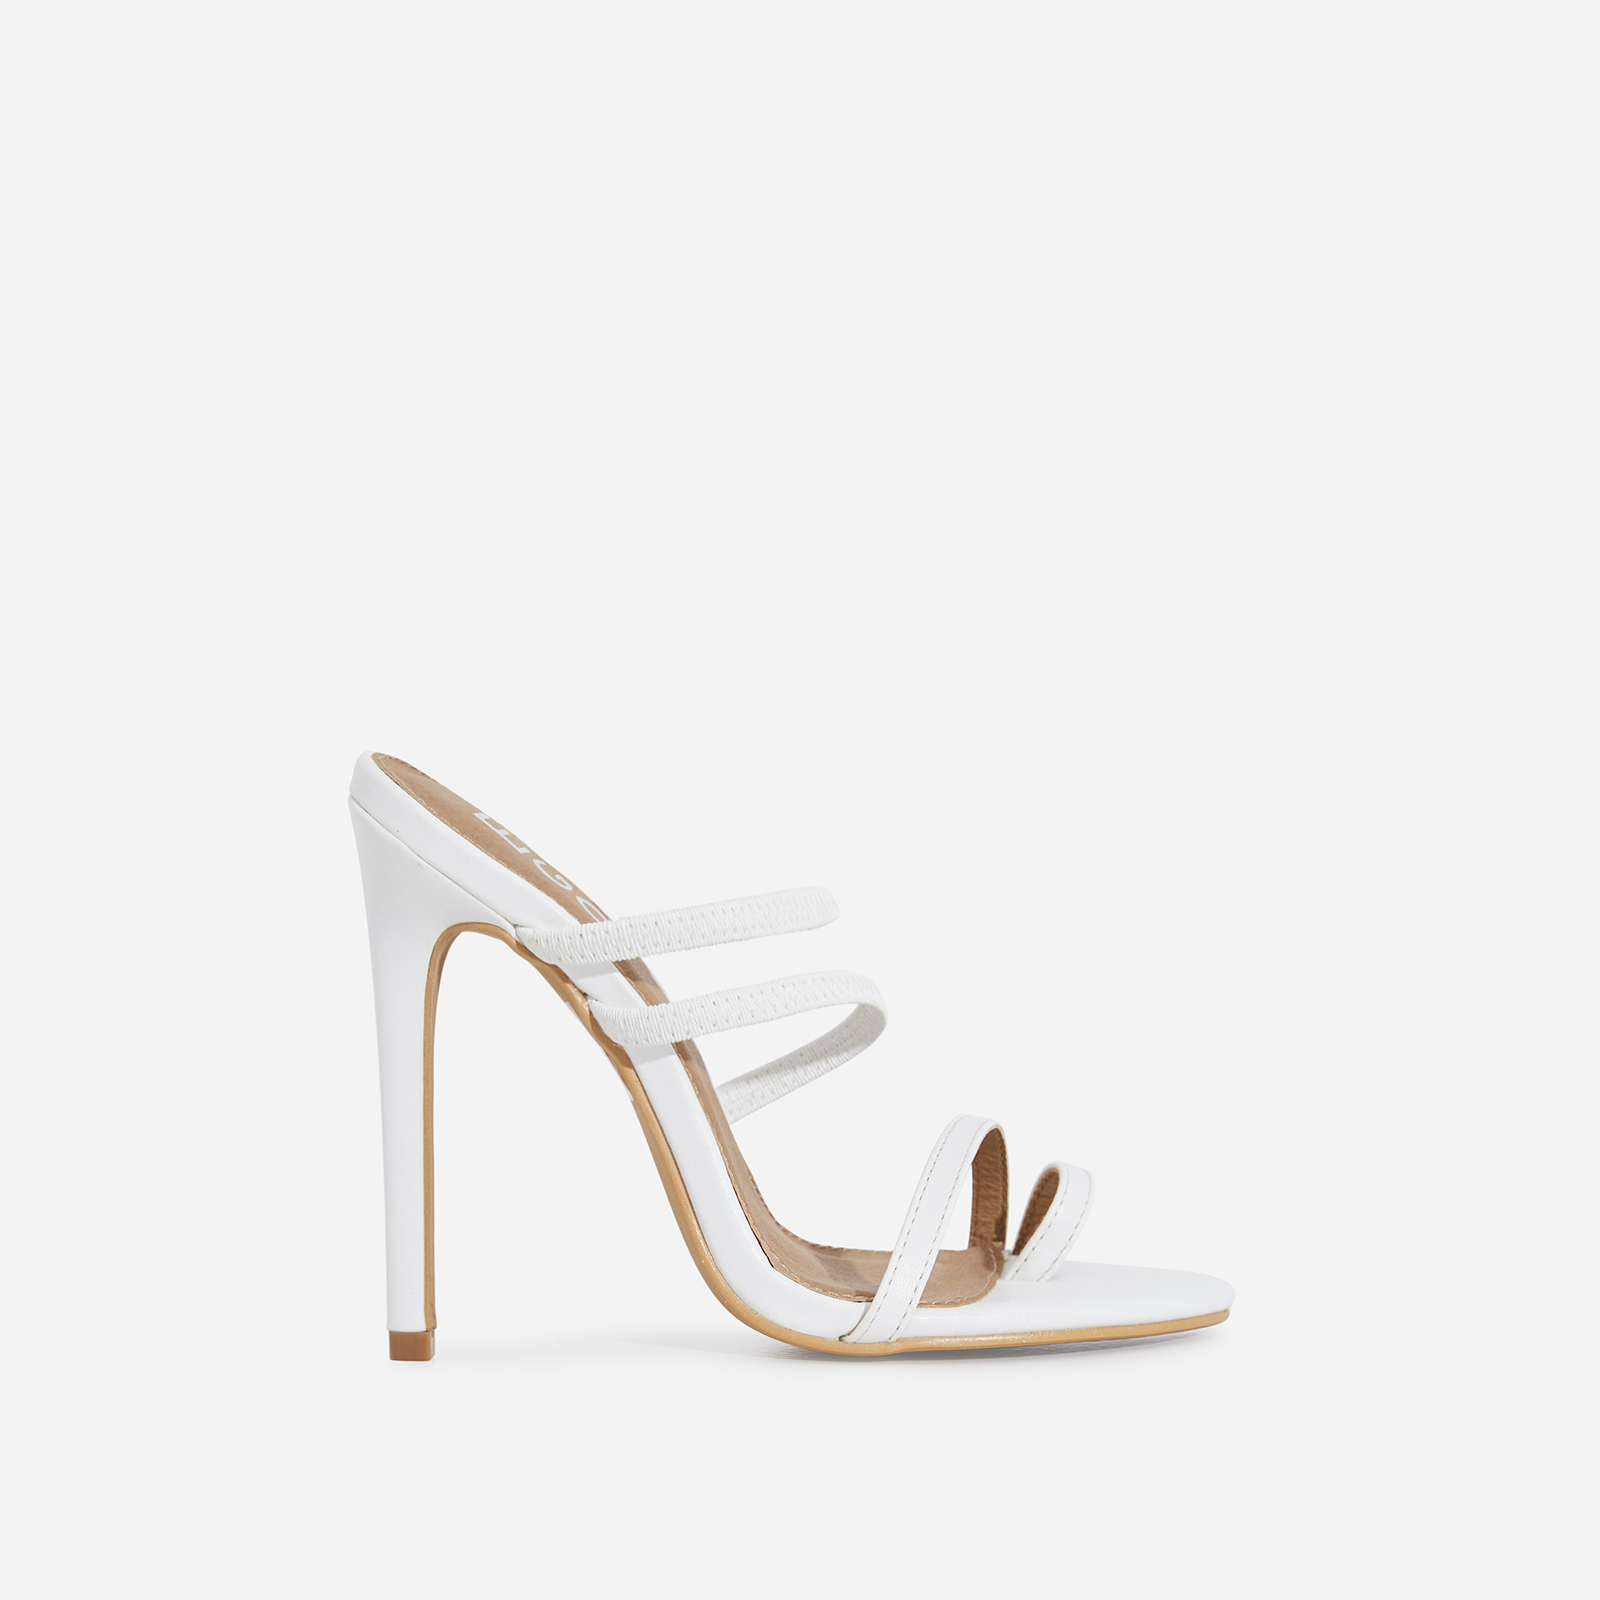 Letty Toe Strap Heel Mule In White Faux Leather